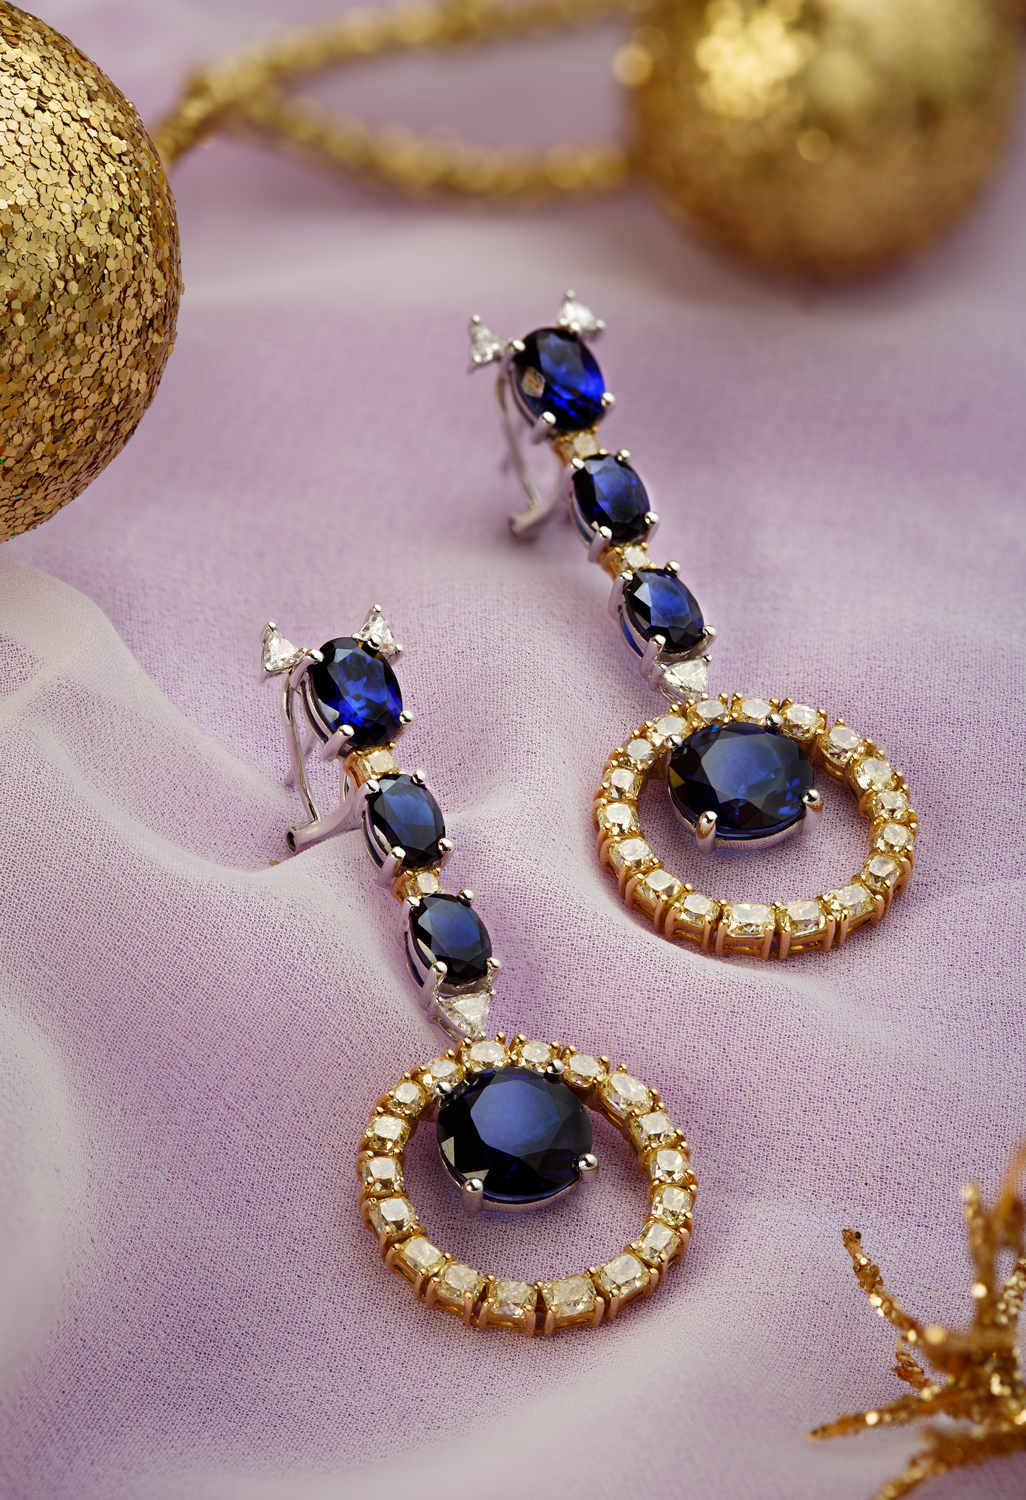 Avrohom_Perl_Commercial_Photography_earings_1.jpg